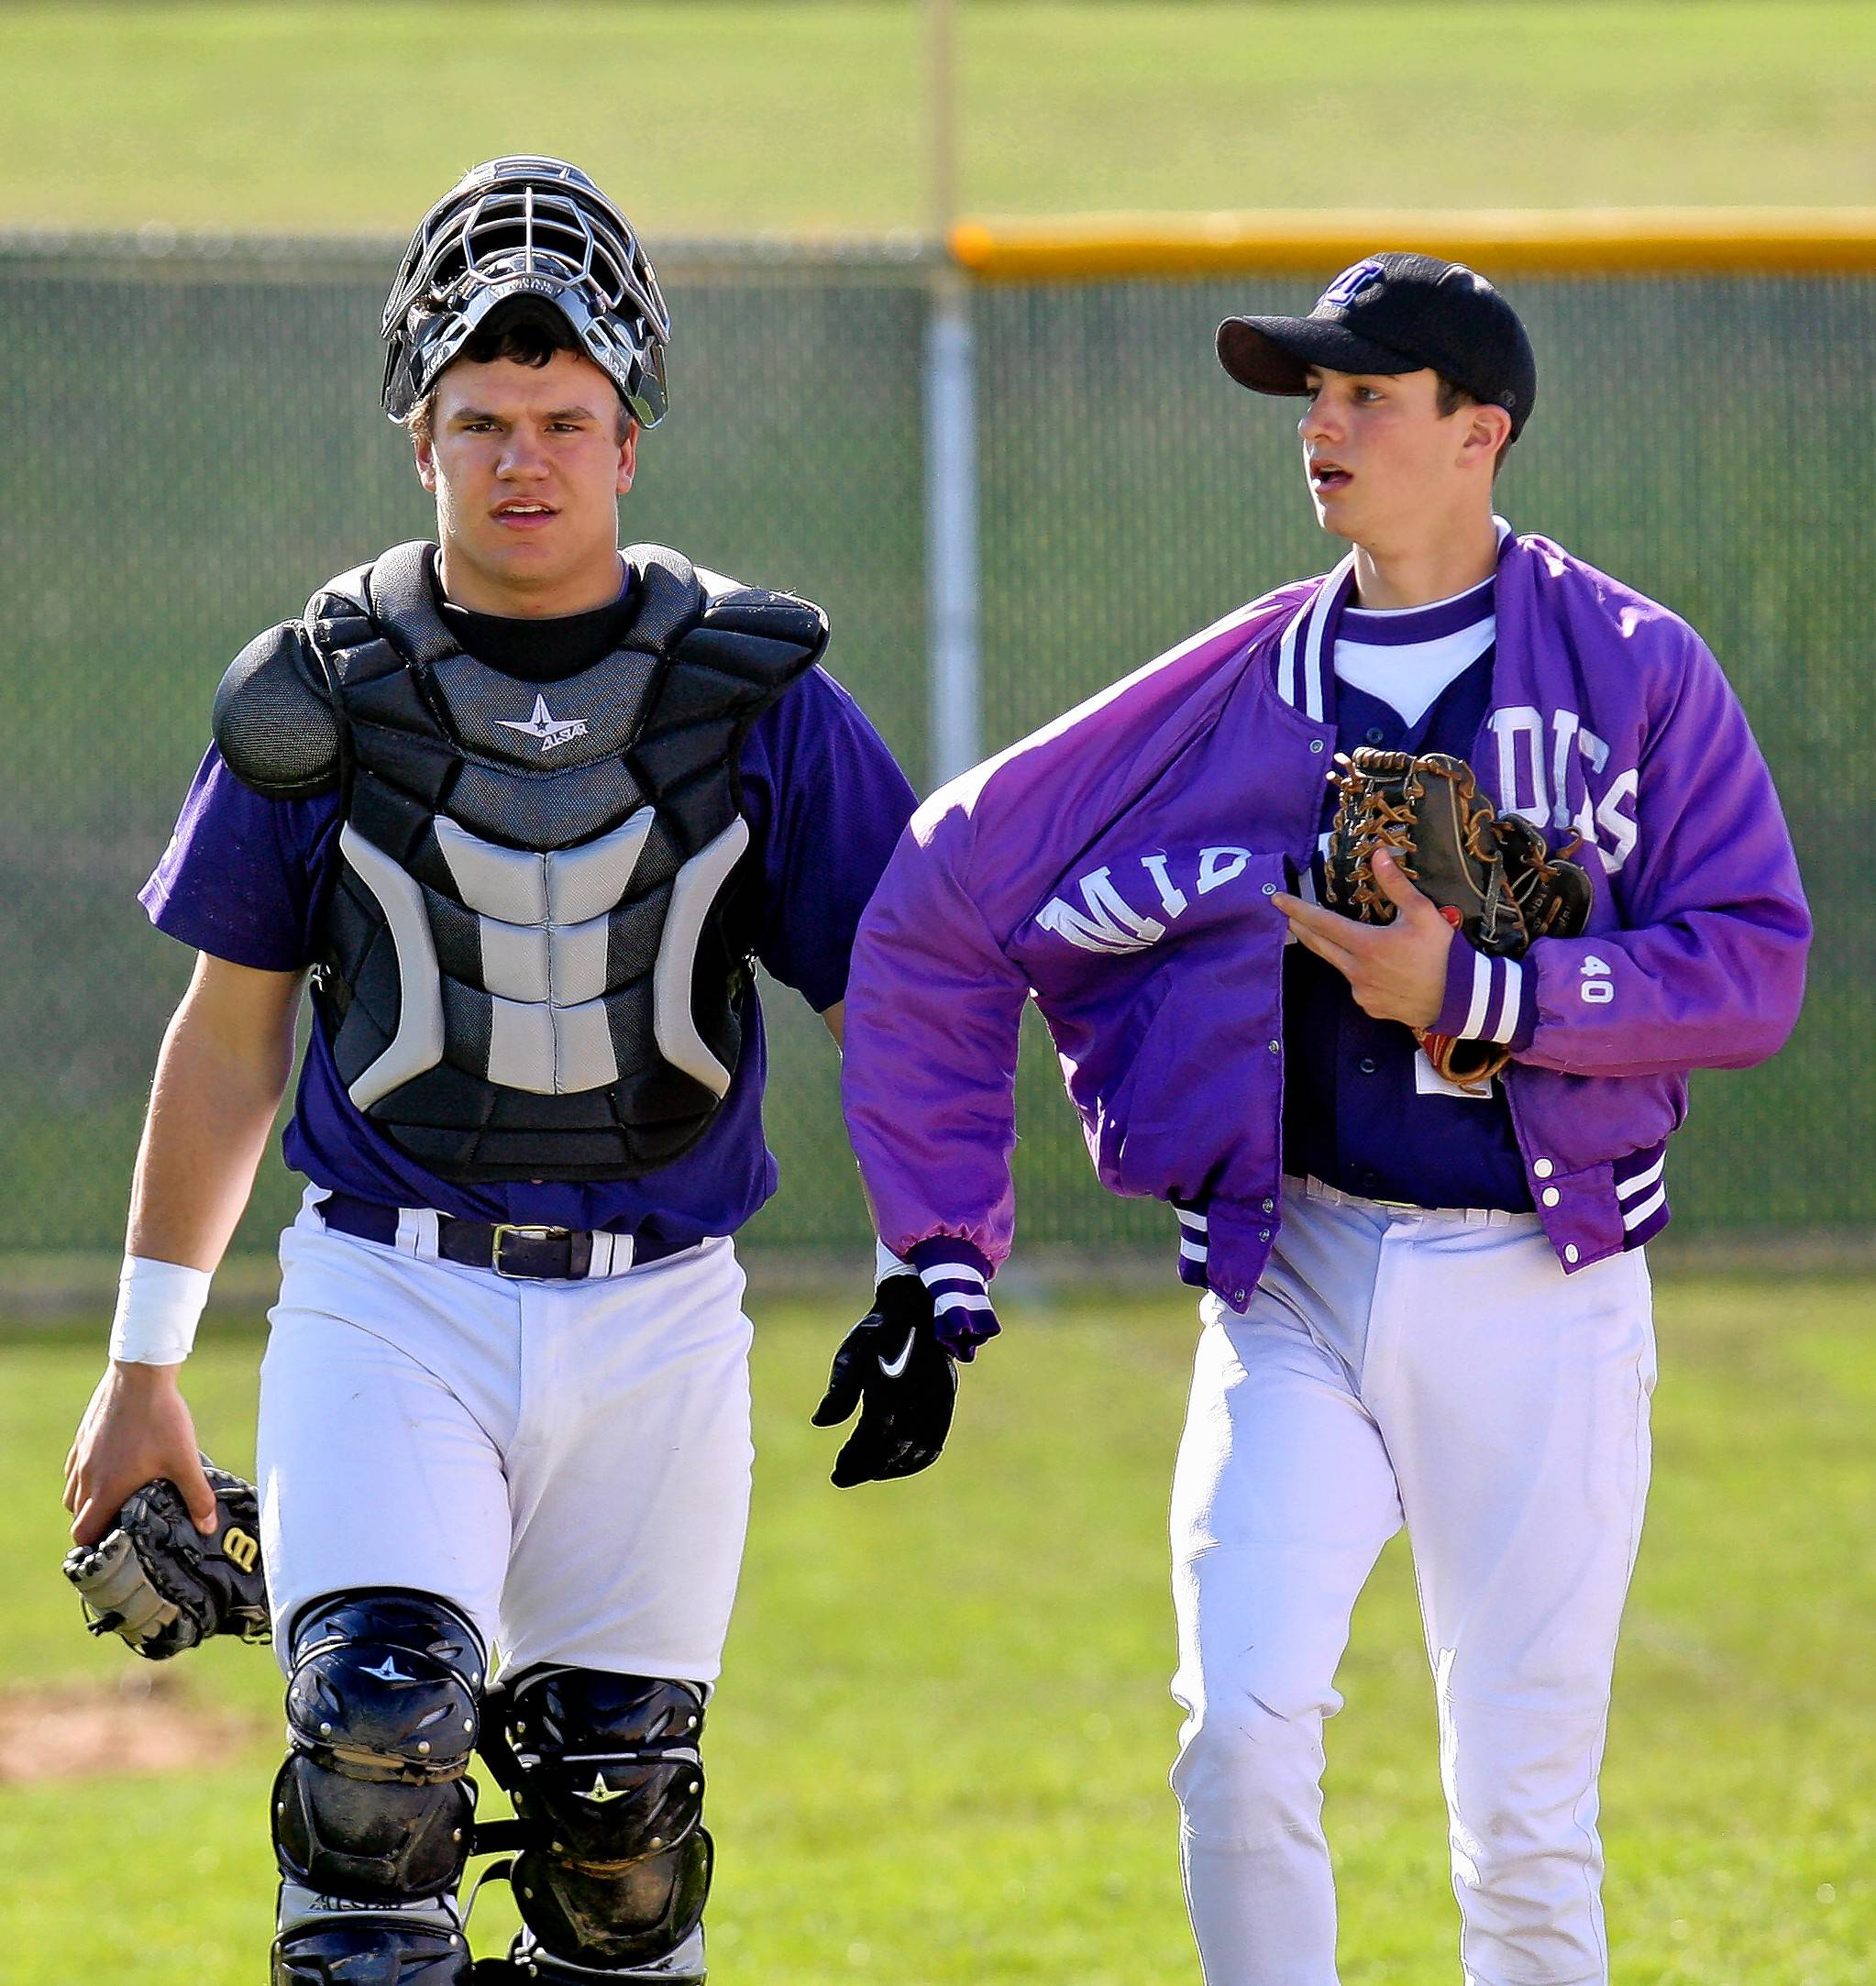 Middletown senior catcher Kyle Schwarber walks teammate Nick Henry to the dugout in game against Lakota West on April 6, 2011. That season, Schwarber led the Greater Miami Conference with a .474 batting average and a .643 on-base percentage.